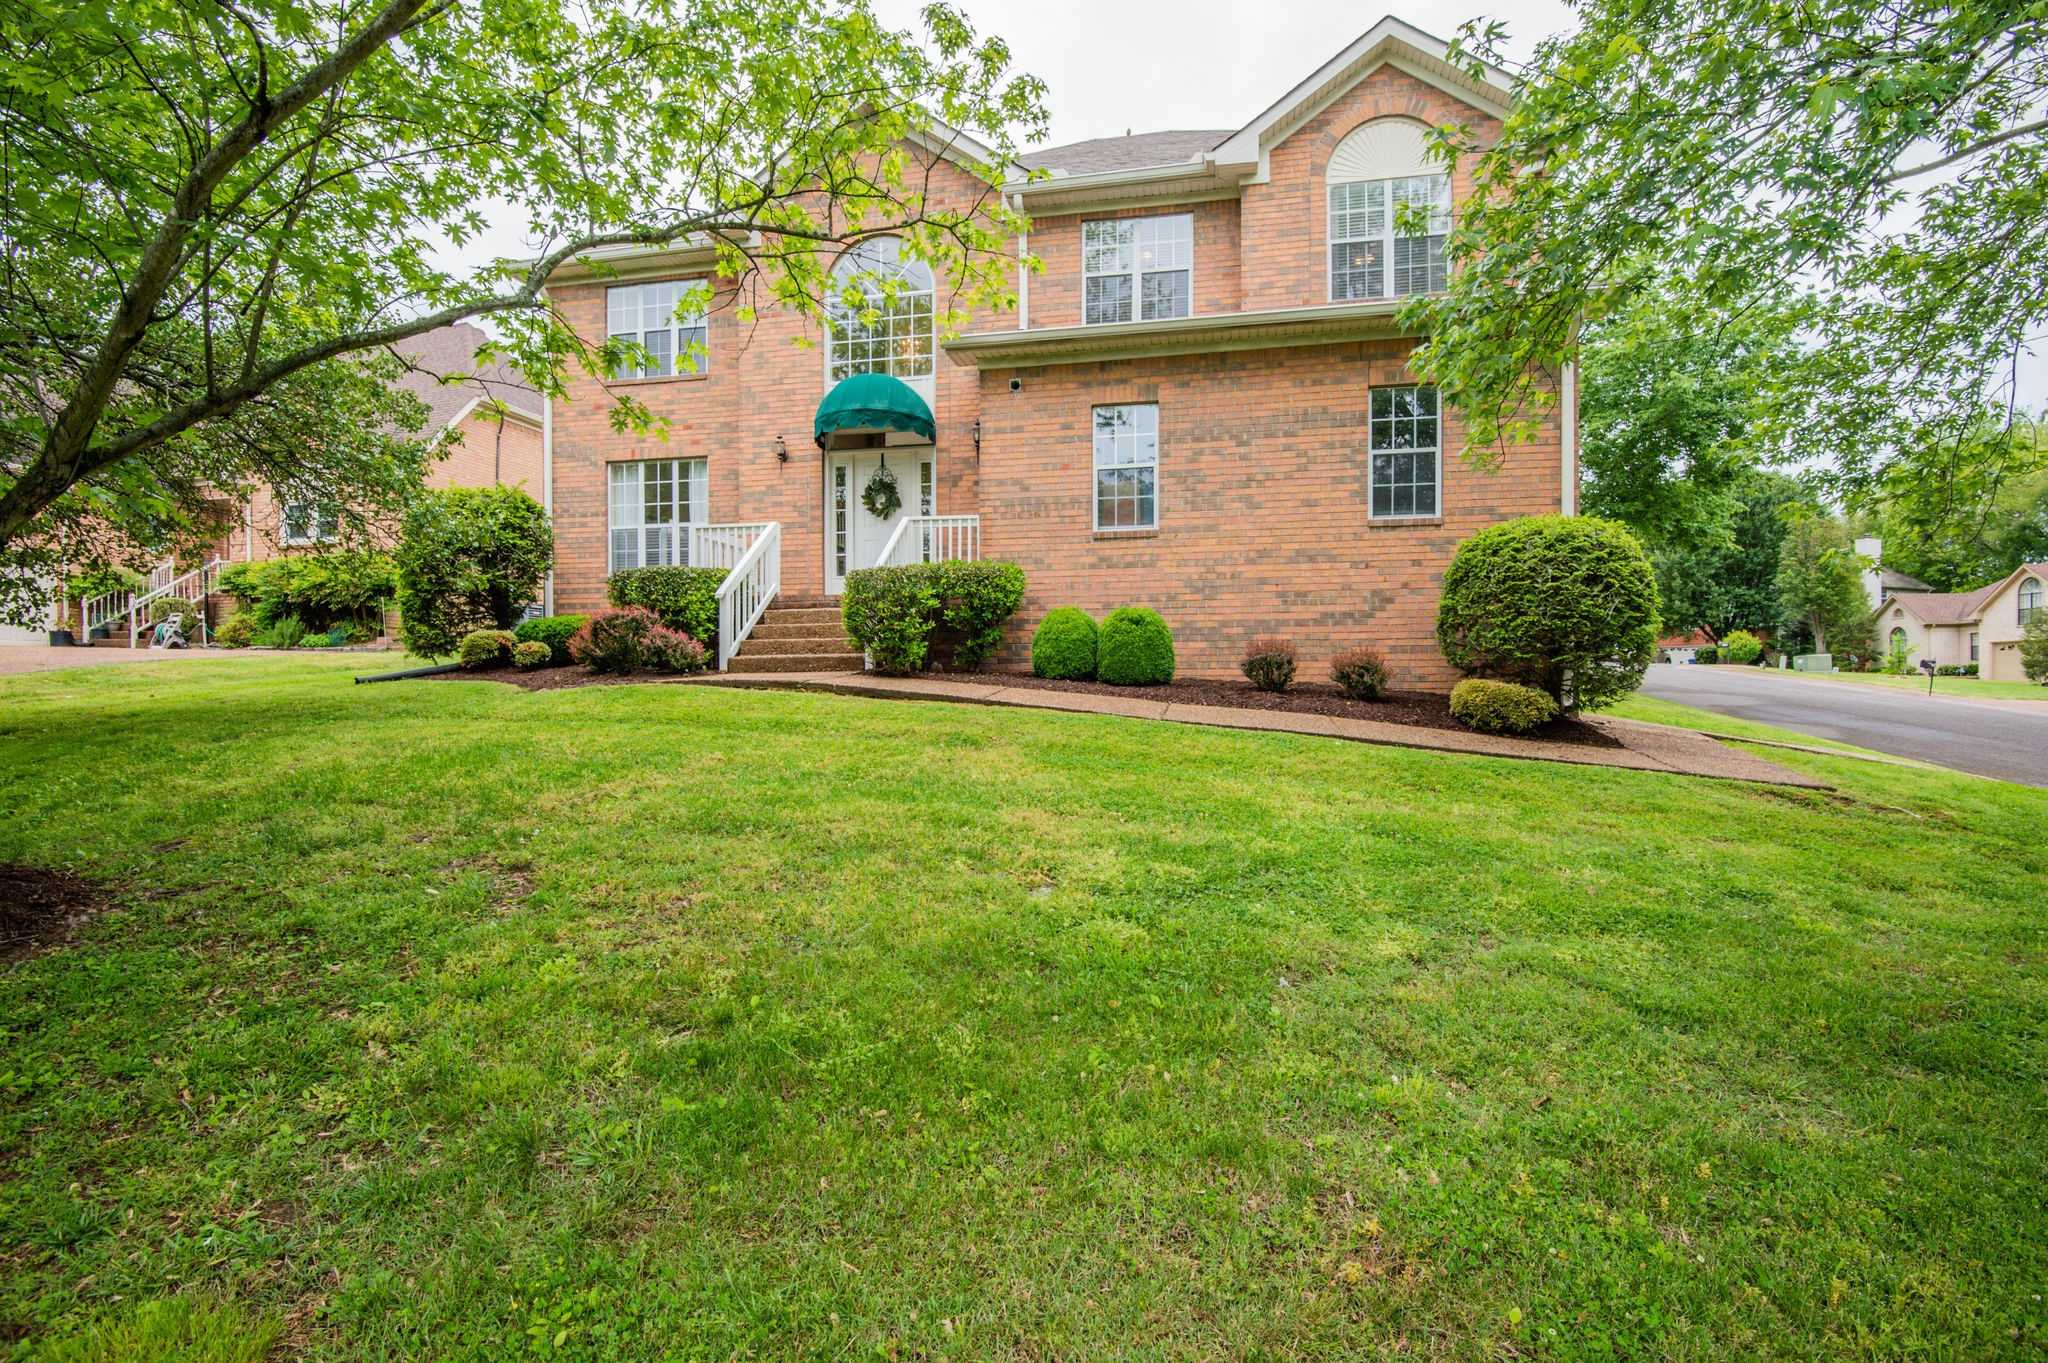 301 Harpeth View Cir, Bellevue in Davidson County, TN County, TN 37221 Home for Sale